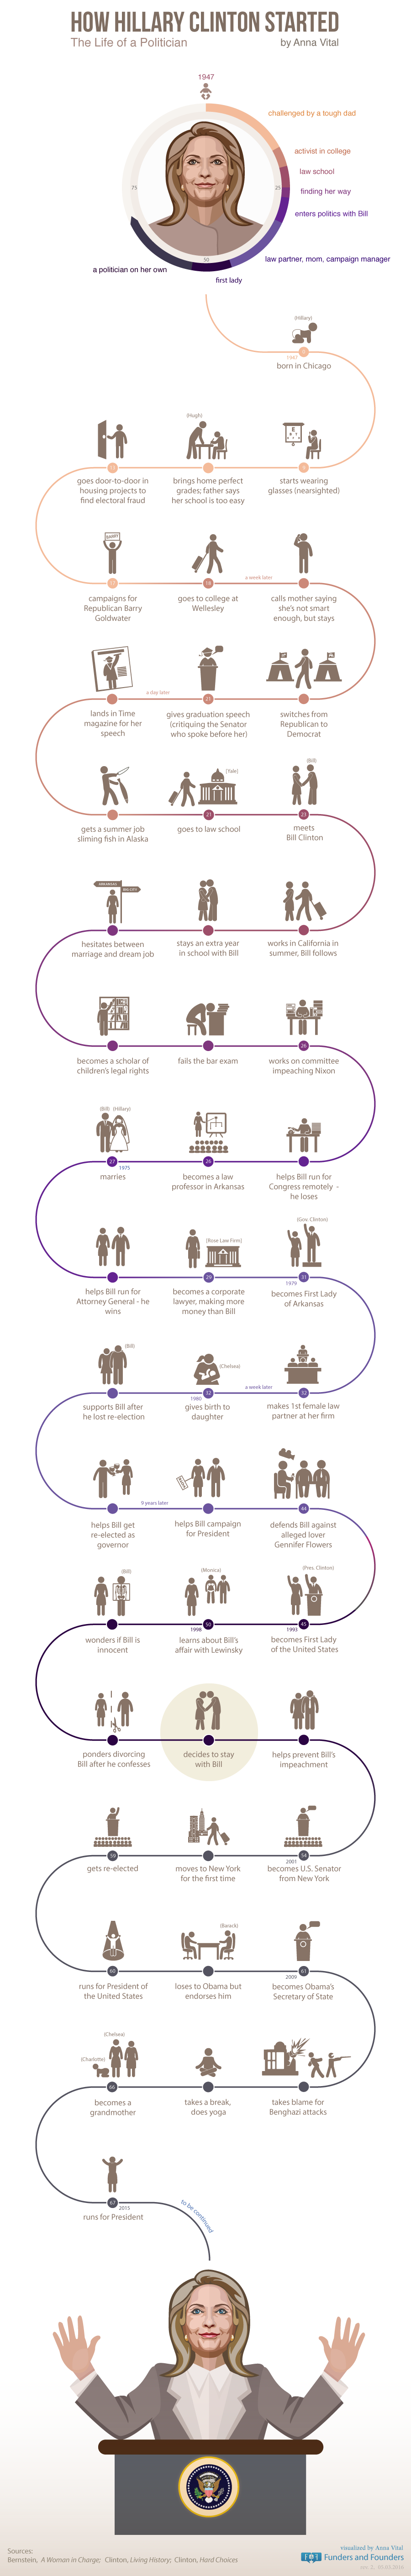 How Hillary Clinton started - infographic